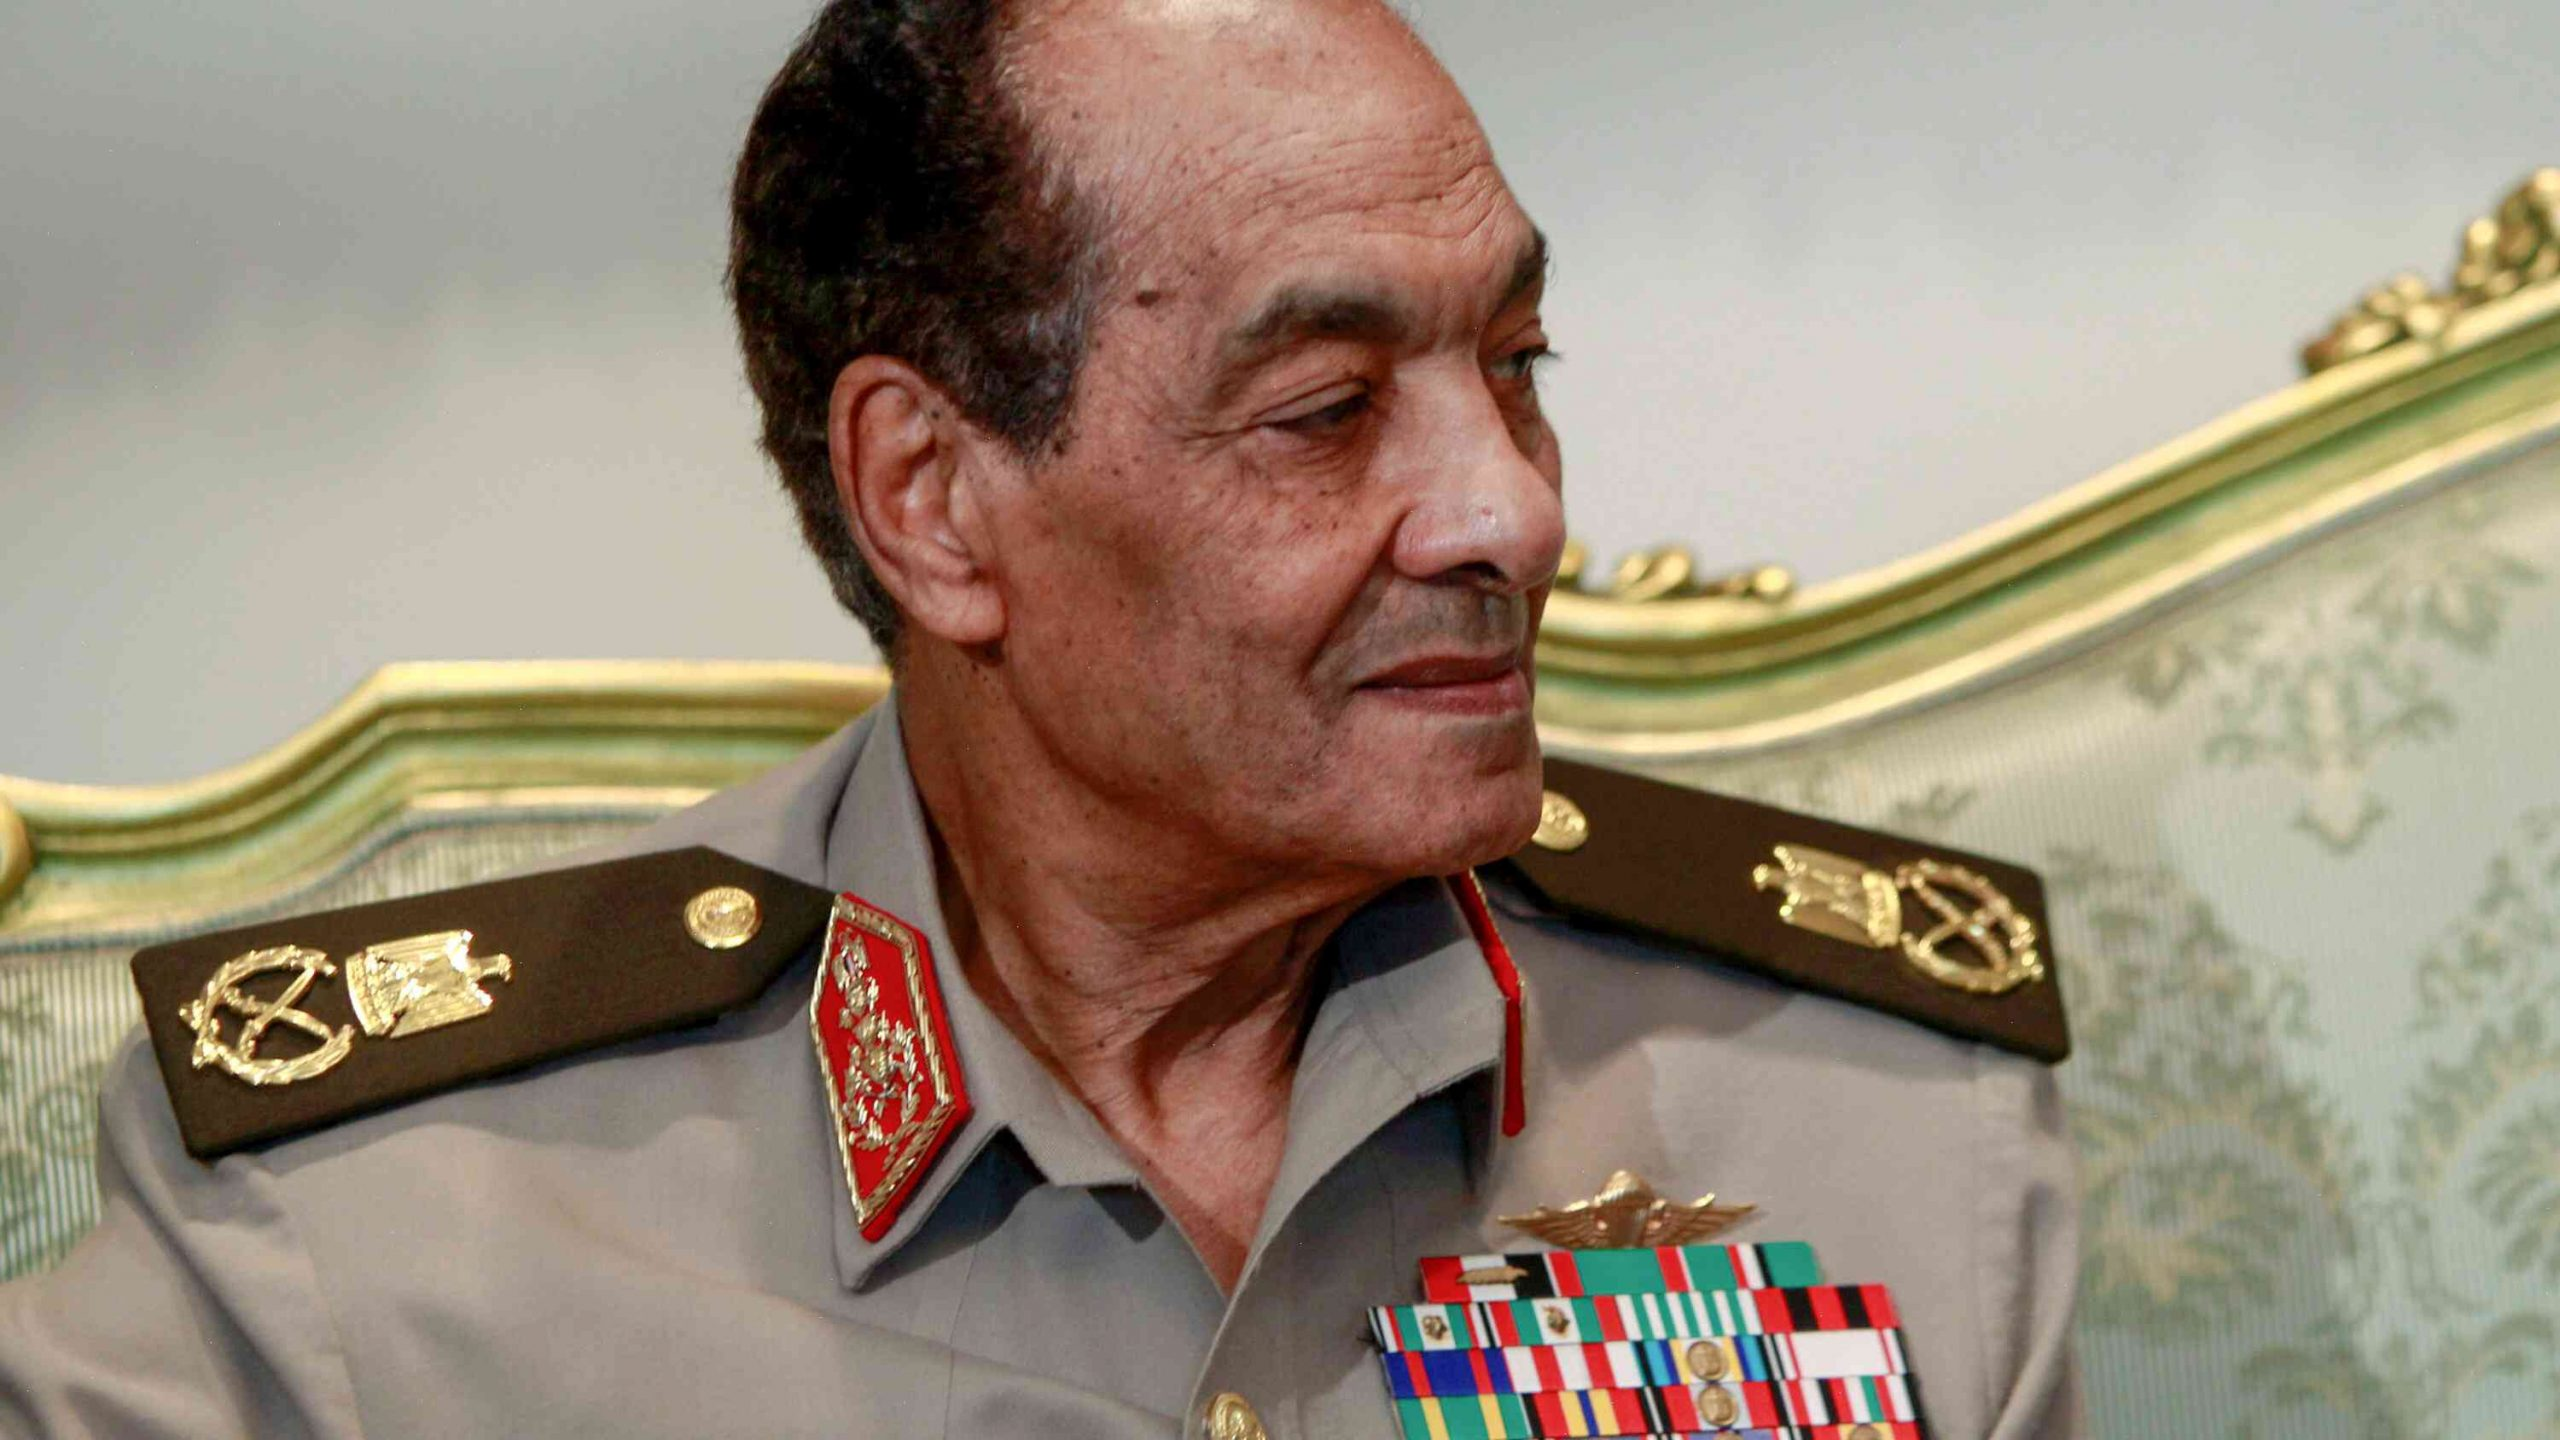 Egypt's former military ruler, who tried to keep order after the 2011 revolution, dies